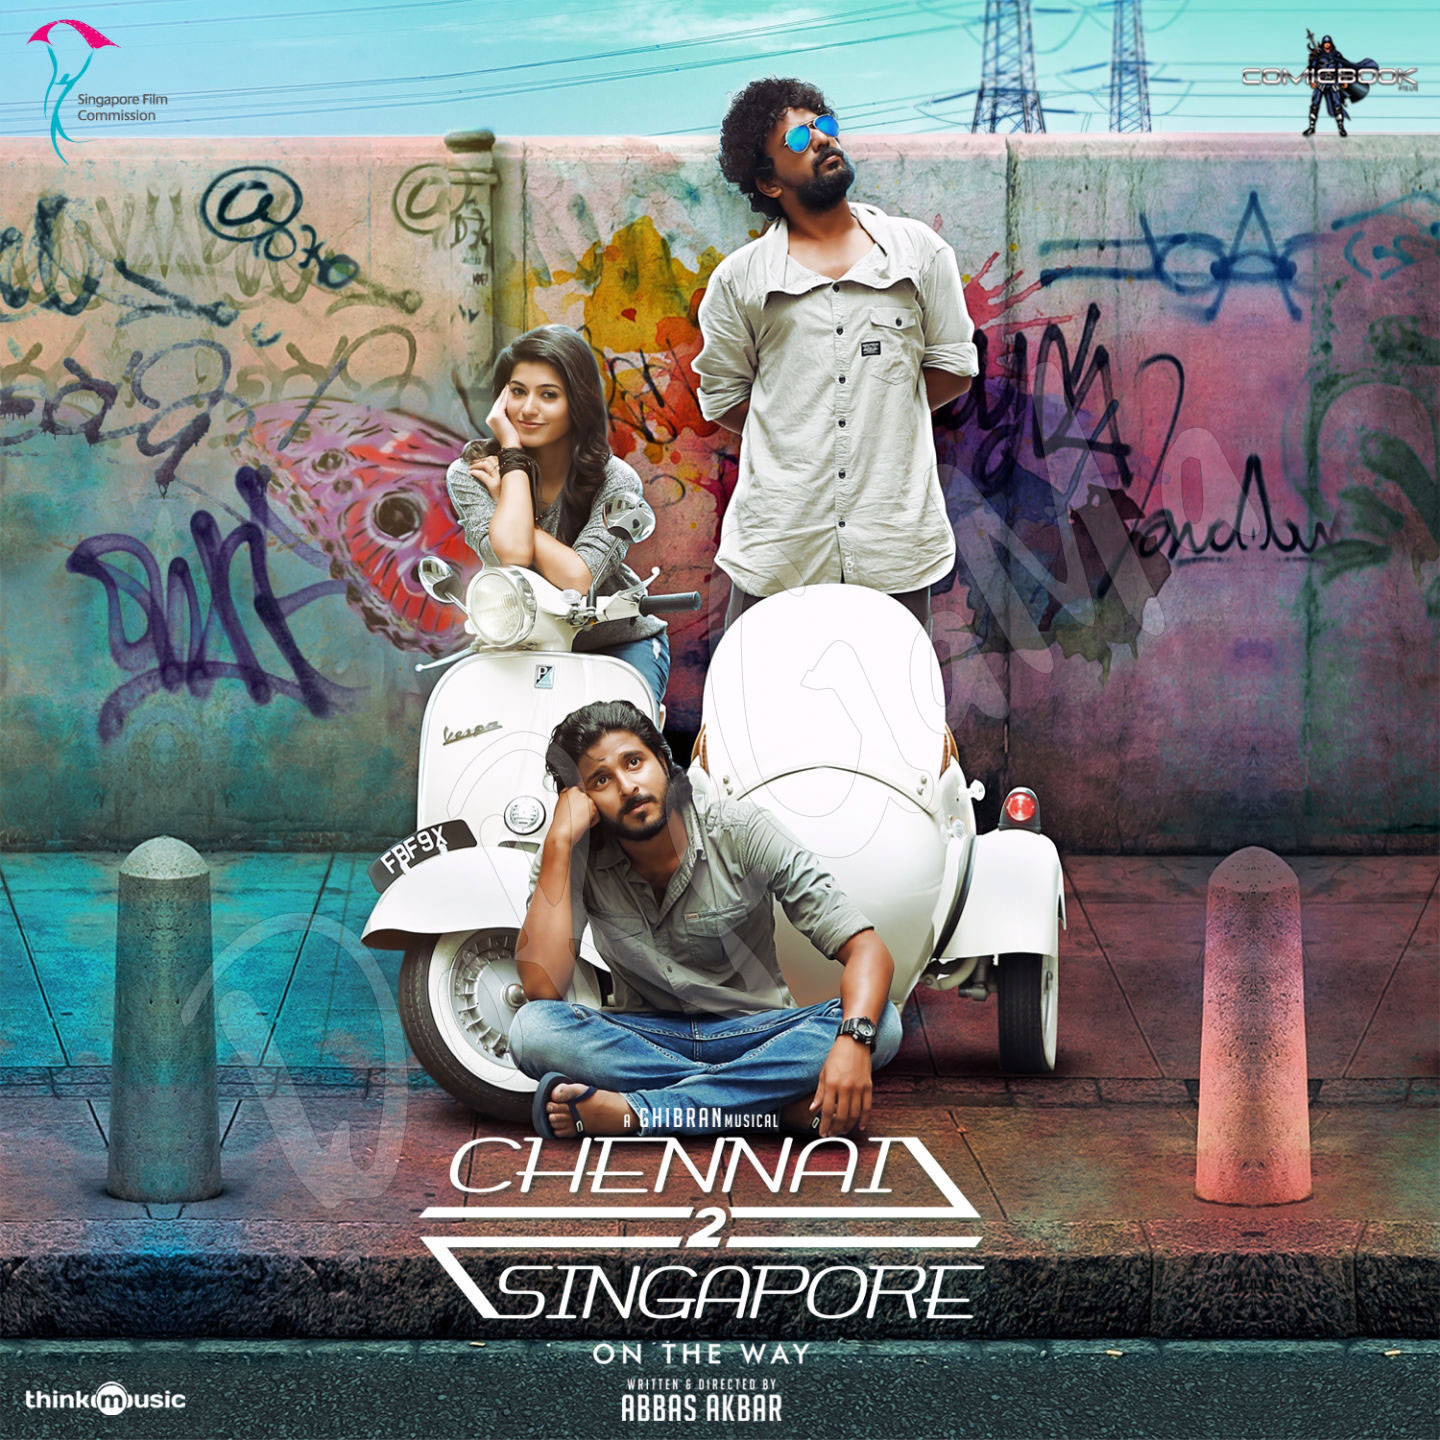 Chennai-2-Singapore-Tamil-Movie--2016-Telugu-2016-CD-Front-Cover-Poster-Wallpaper-HD